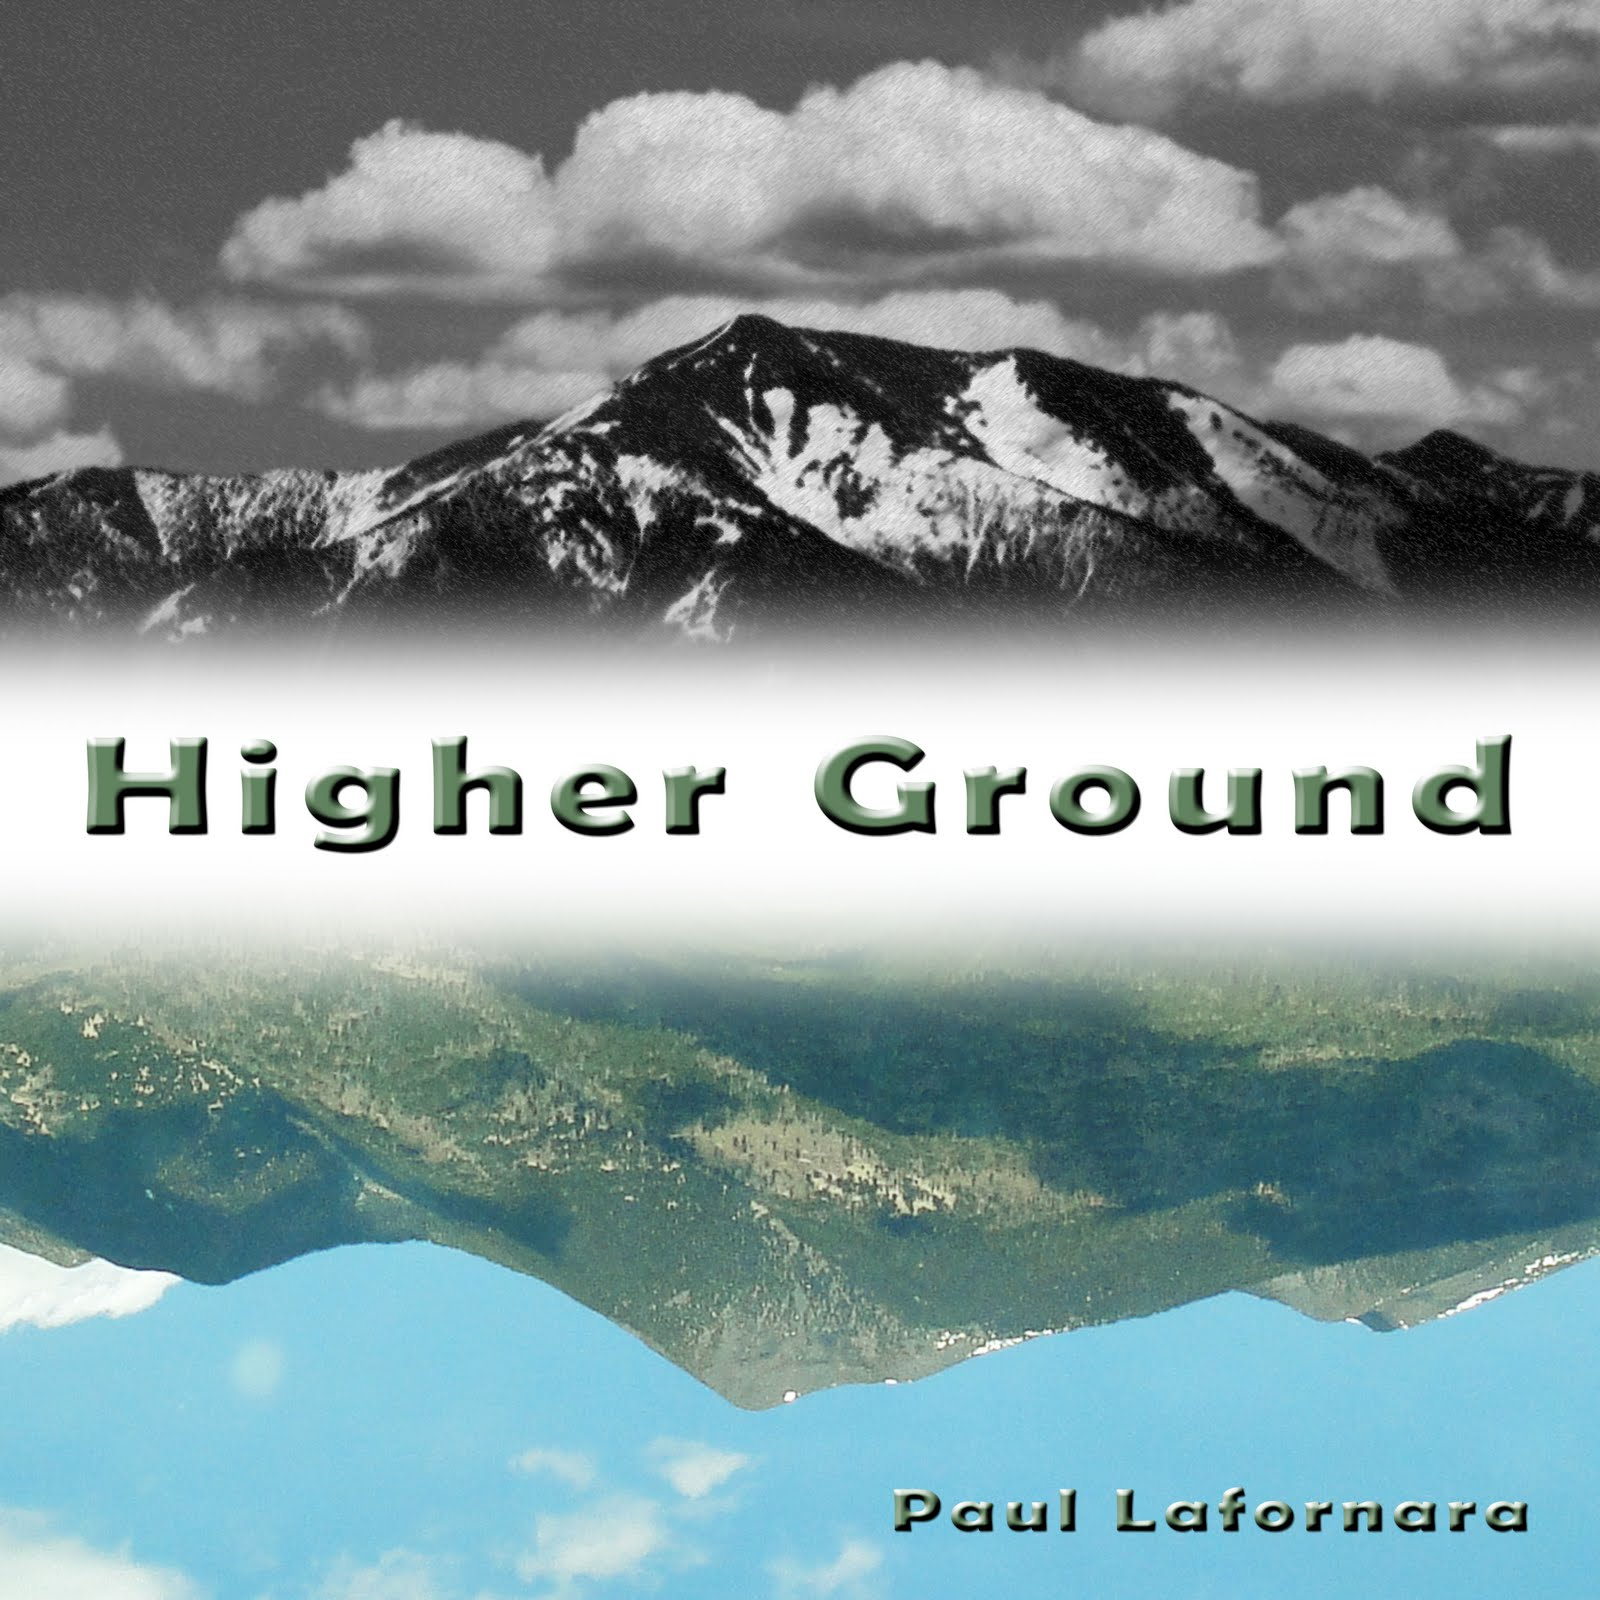 higher ground letra: